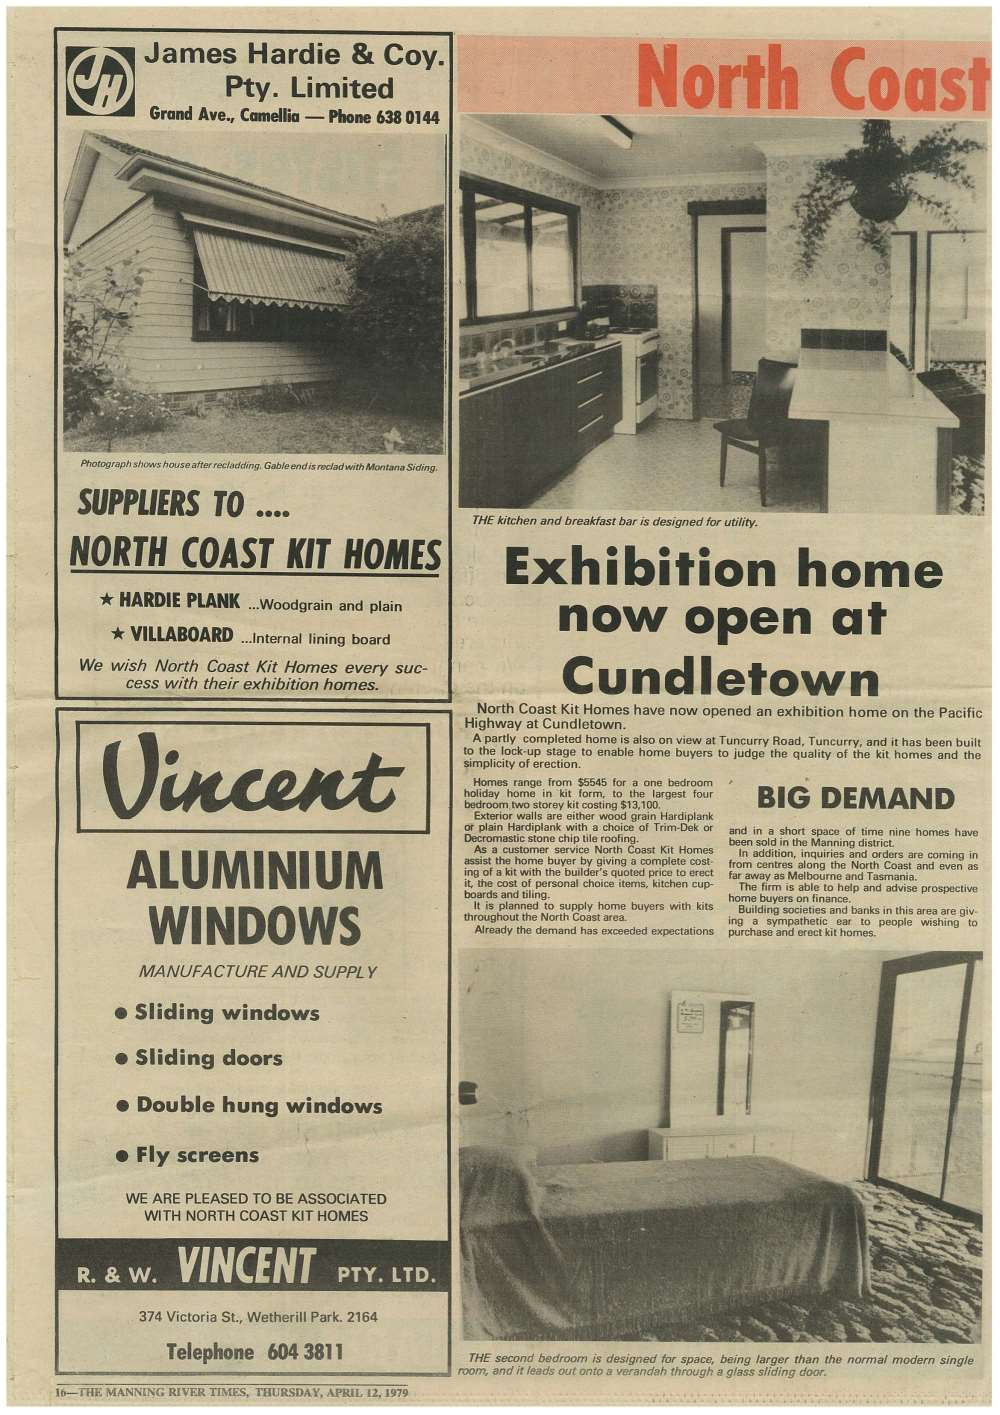 Exhibition home now open at Cundletown